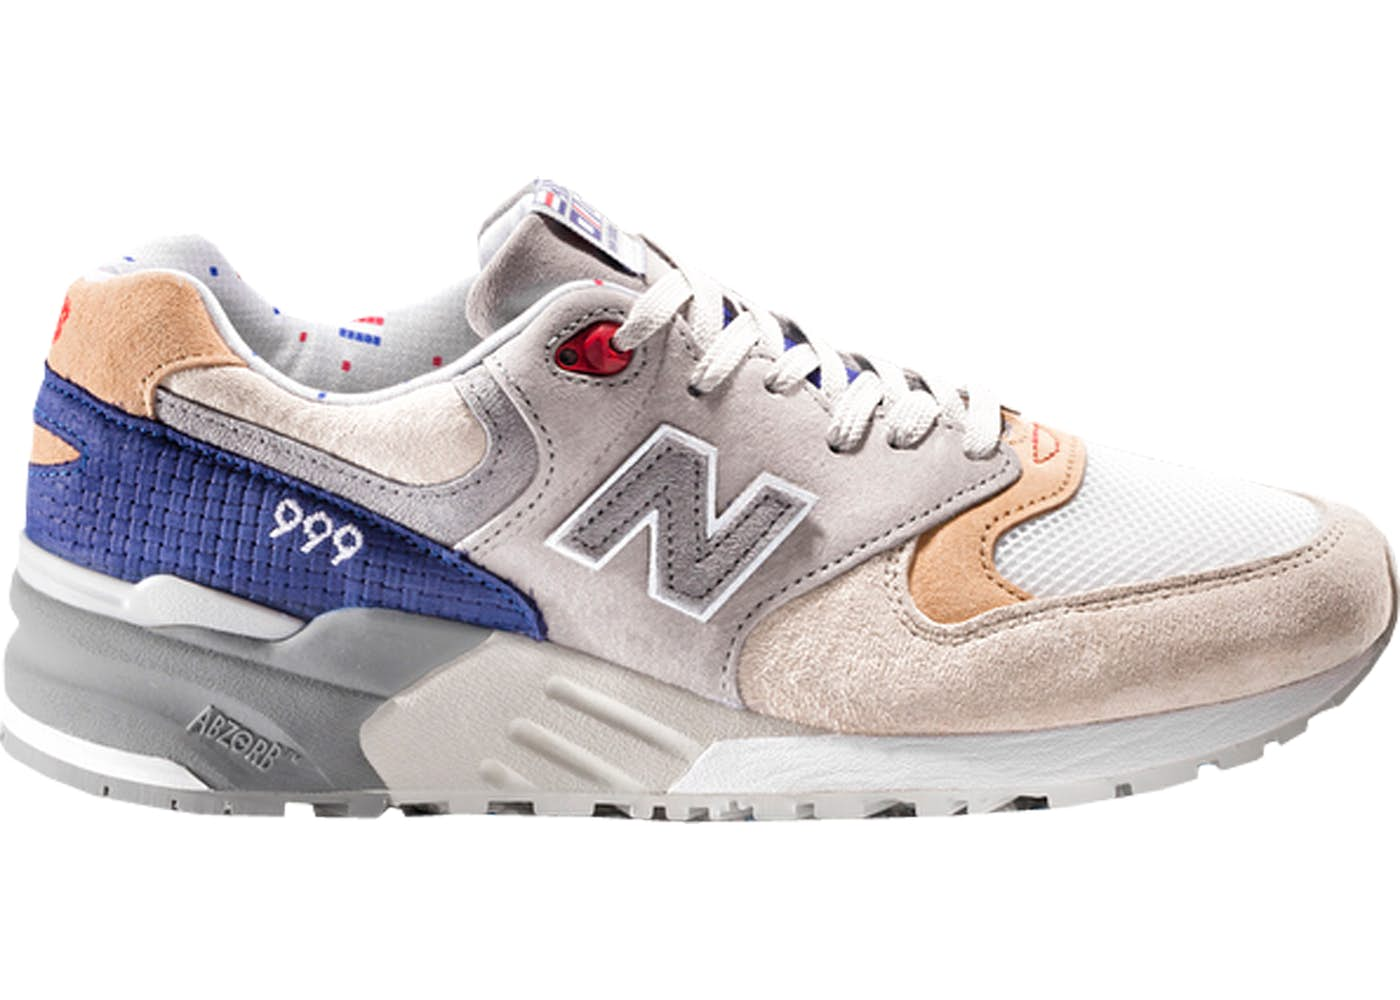 Balance 999 concepts hyannis blue new balance 999 concepts hyannis blue biocorpaavc Choice Image